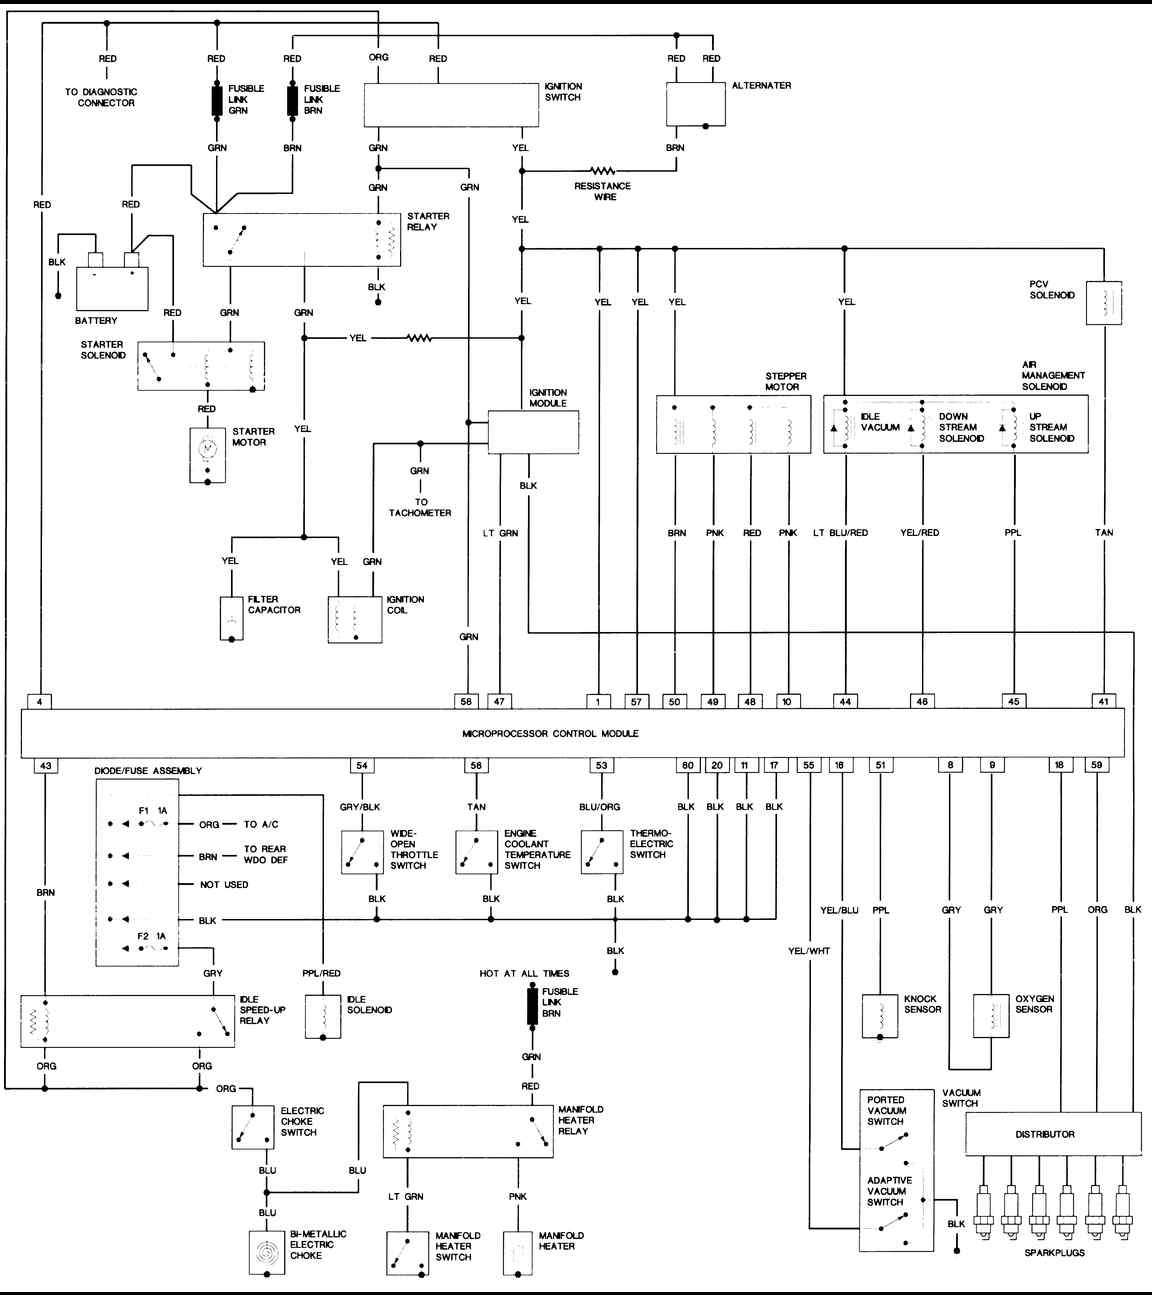 2008 F150 Radio Wiring Diagram as well 1986 Jeep  anche Chasis 2 Of 2 Large likewise 1987 Jeep Wrangler 4 2L Engine Large together with 2011 05 01 archive additionally Parts Master Heater Wiring Diagram. on pontiac wiring schematics